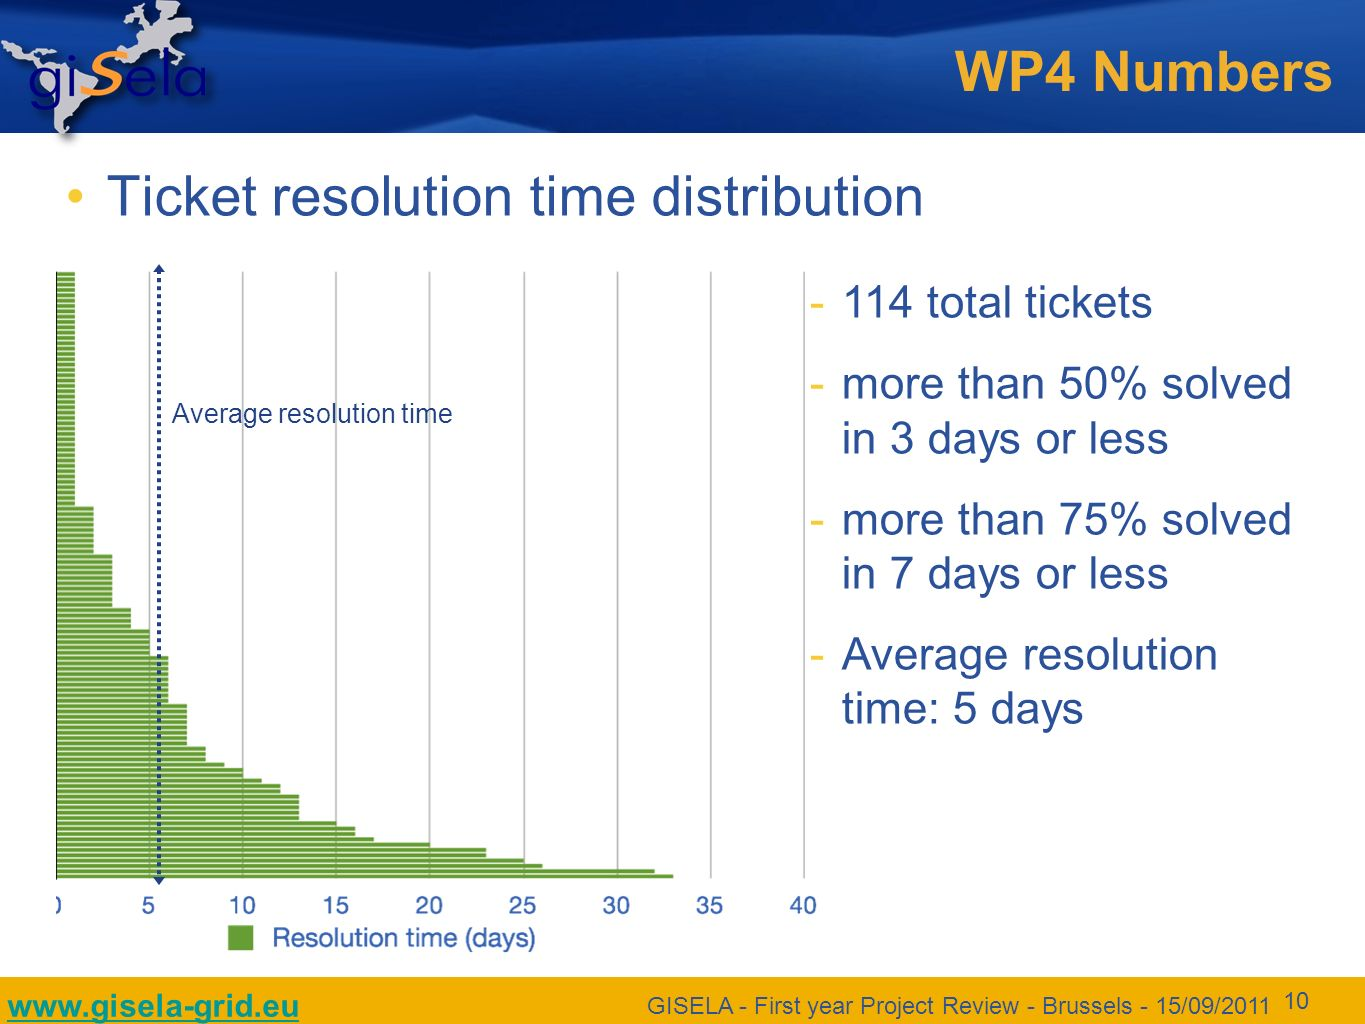 www.gisela-grid.eu GISELA - First year Project Review - Brussels - 15/09/2011 10 WP4 Numbers Ticket resolution time distribution 114 total tickets more than 50% solved in 3 days or less more than 75% solved in 7 days or less Average resolution time: 5 days Average resolution time